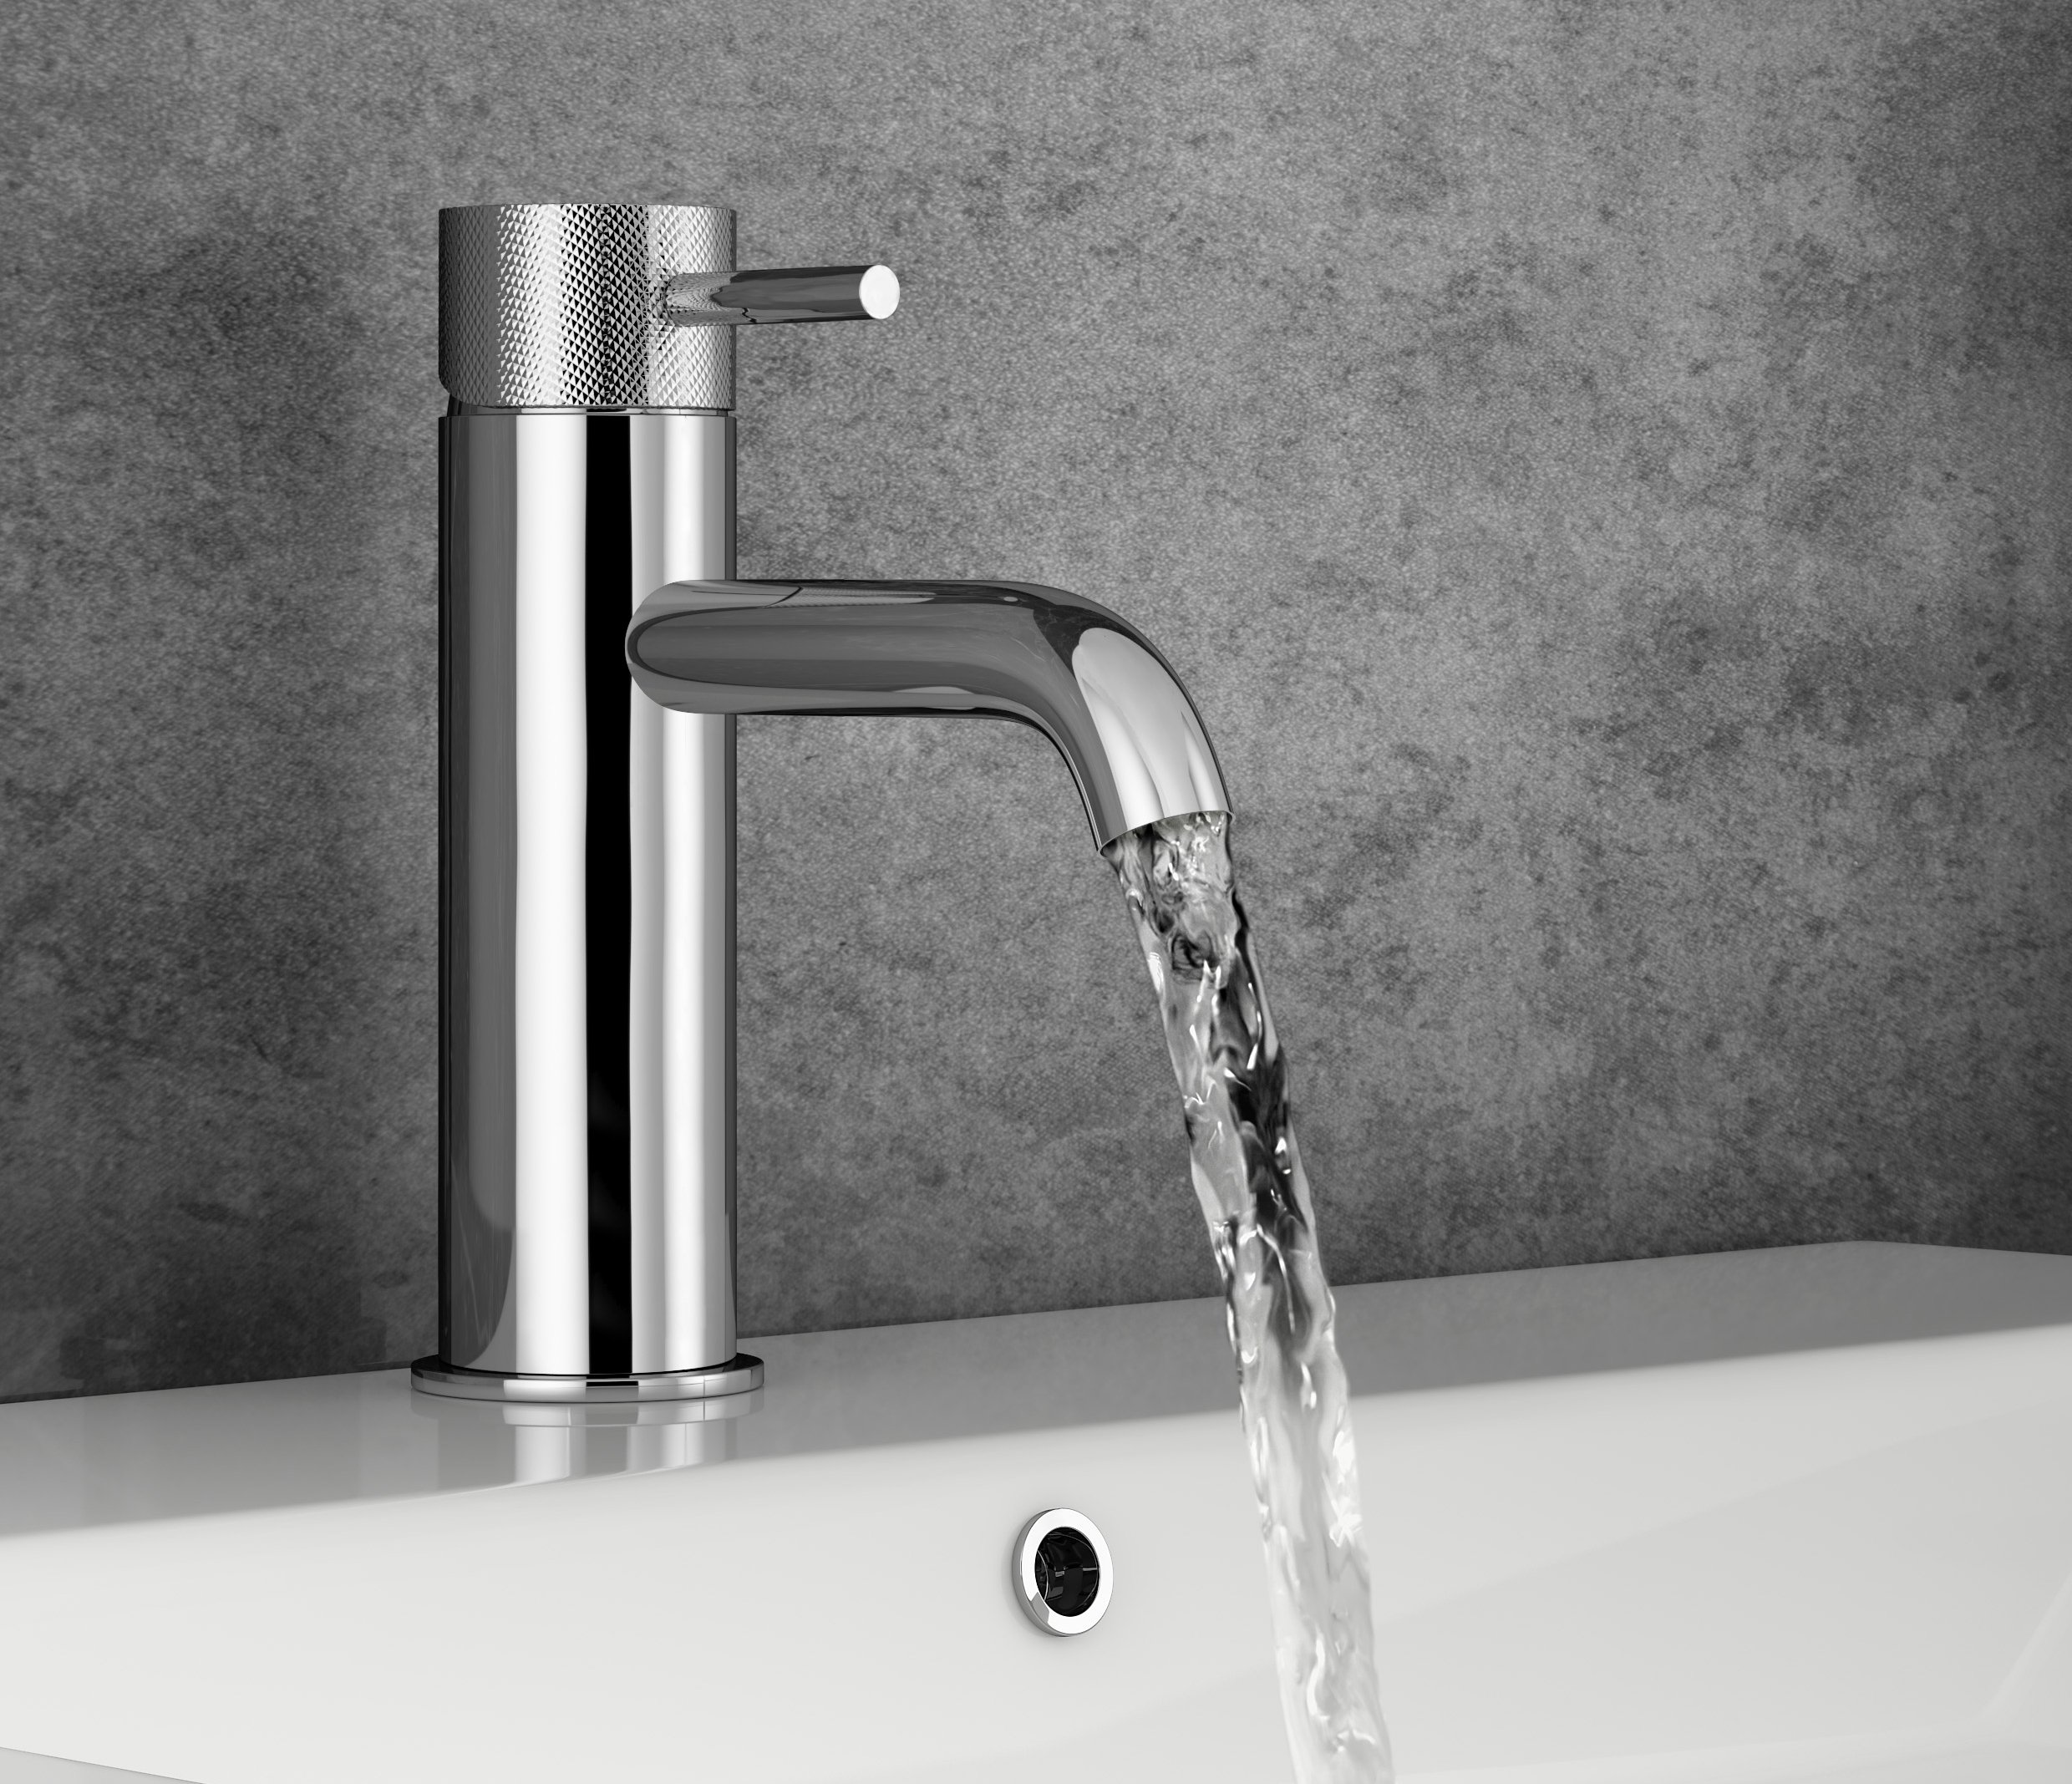 CGI of chrome tap and running water